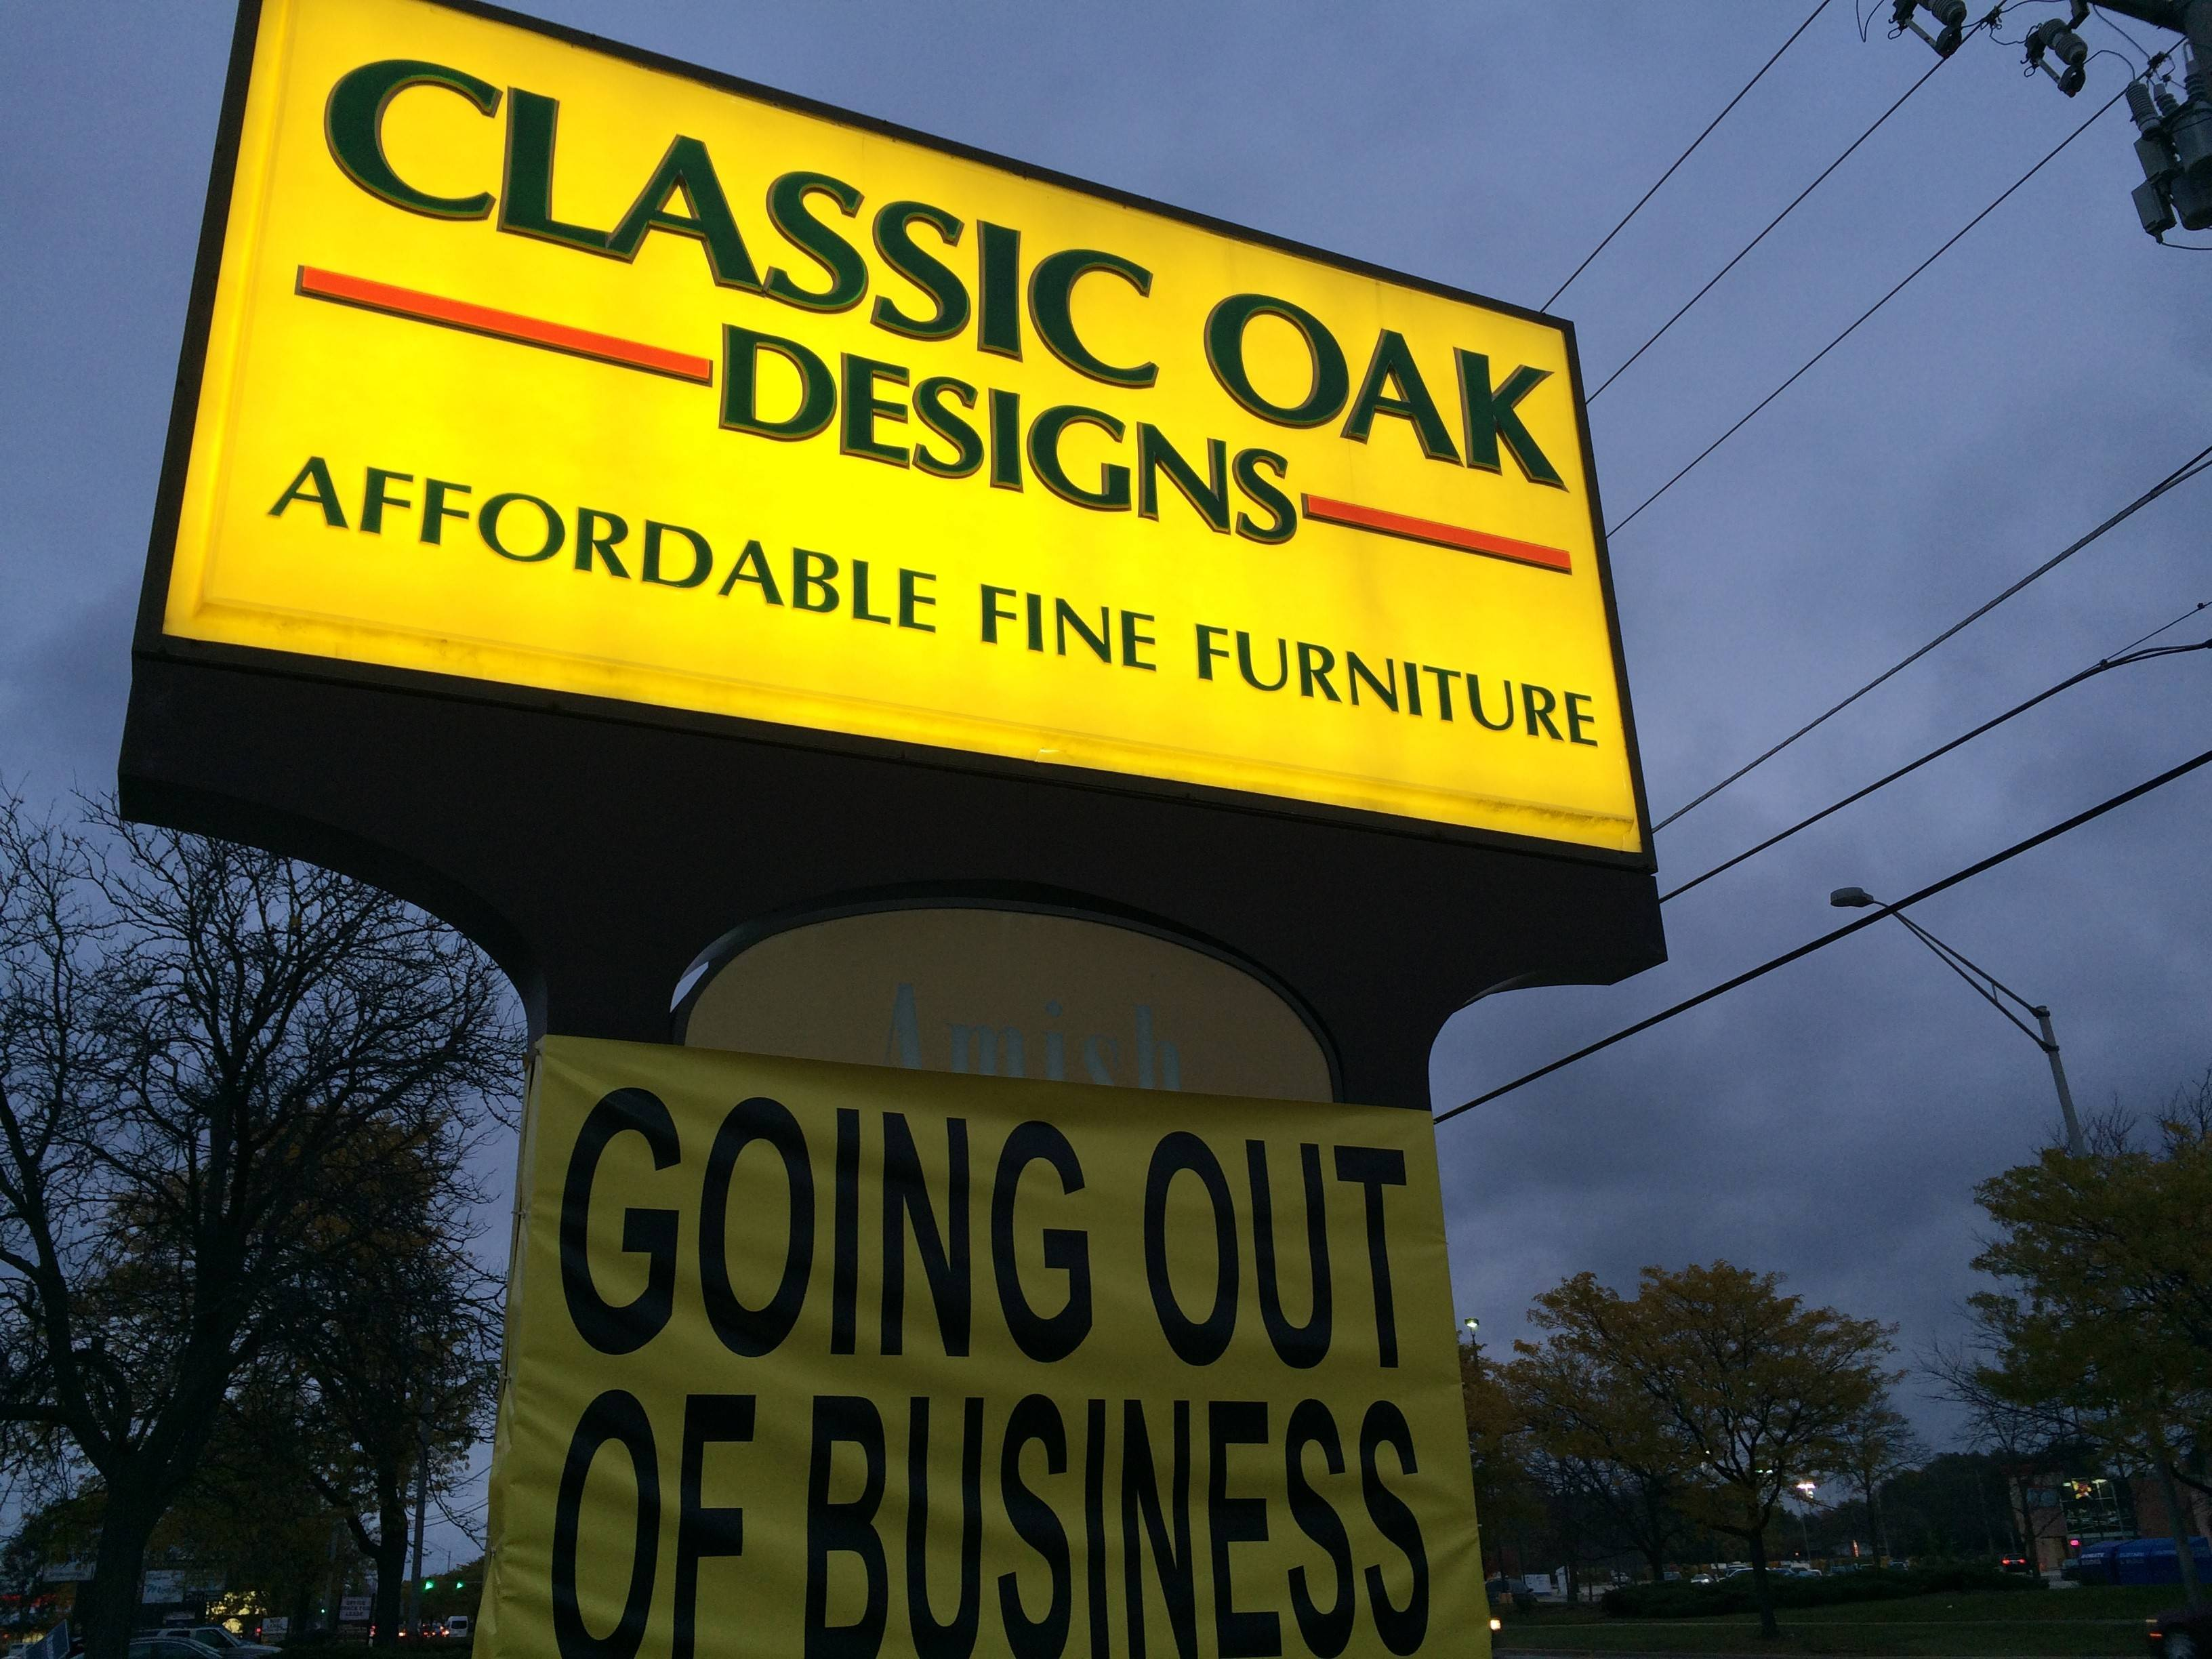 Classic Oak in Arlington Heights is going out of business after 34 years in the community.